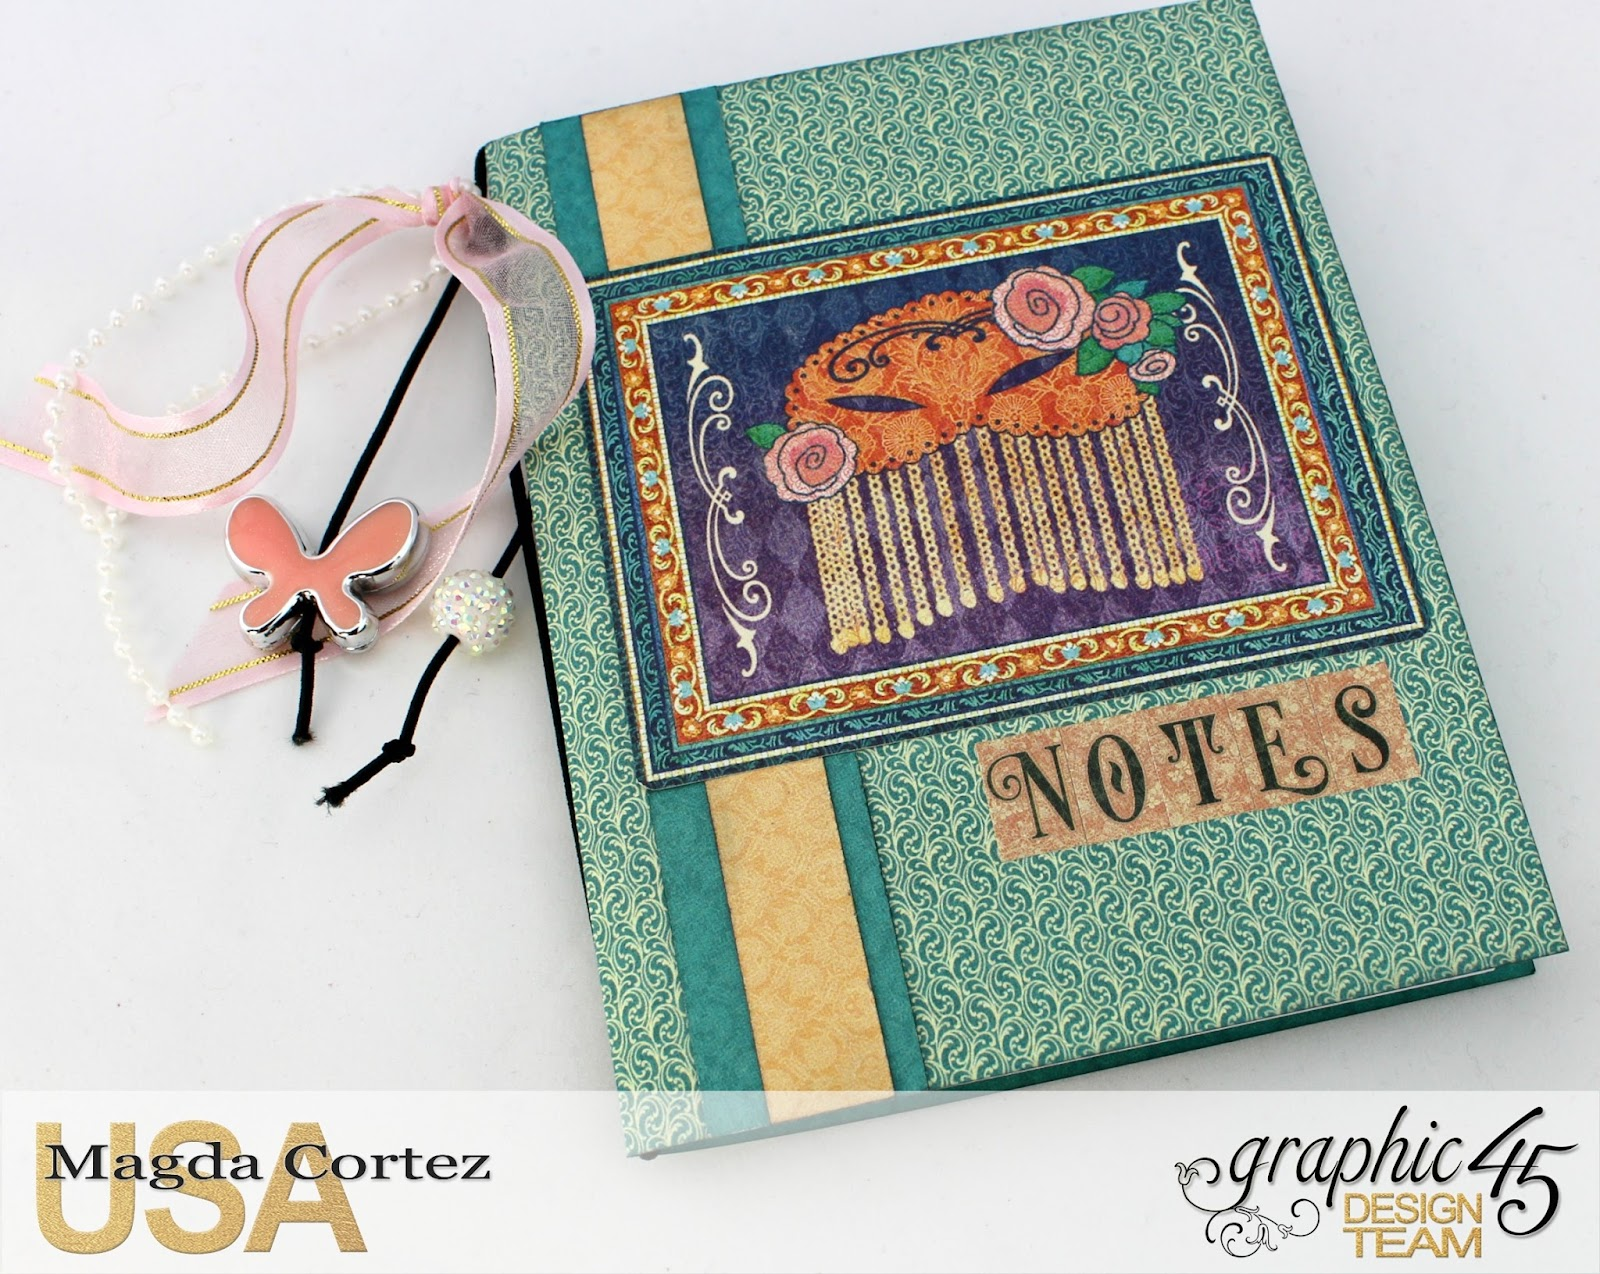 60 Second Tutorial Mini Notebooks, Midnight Masquerade, By Magda Cortez, Product by Graphic 45, Photo 04 of 07, with Tutorial.jpg